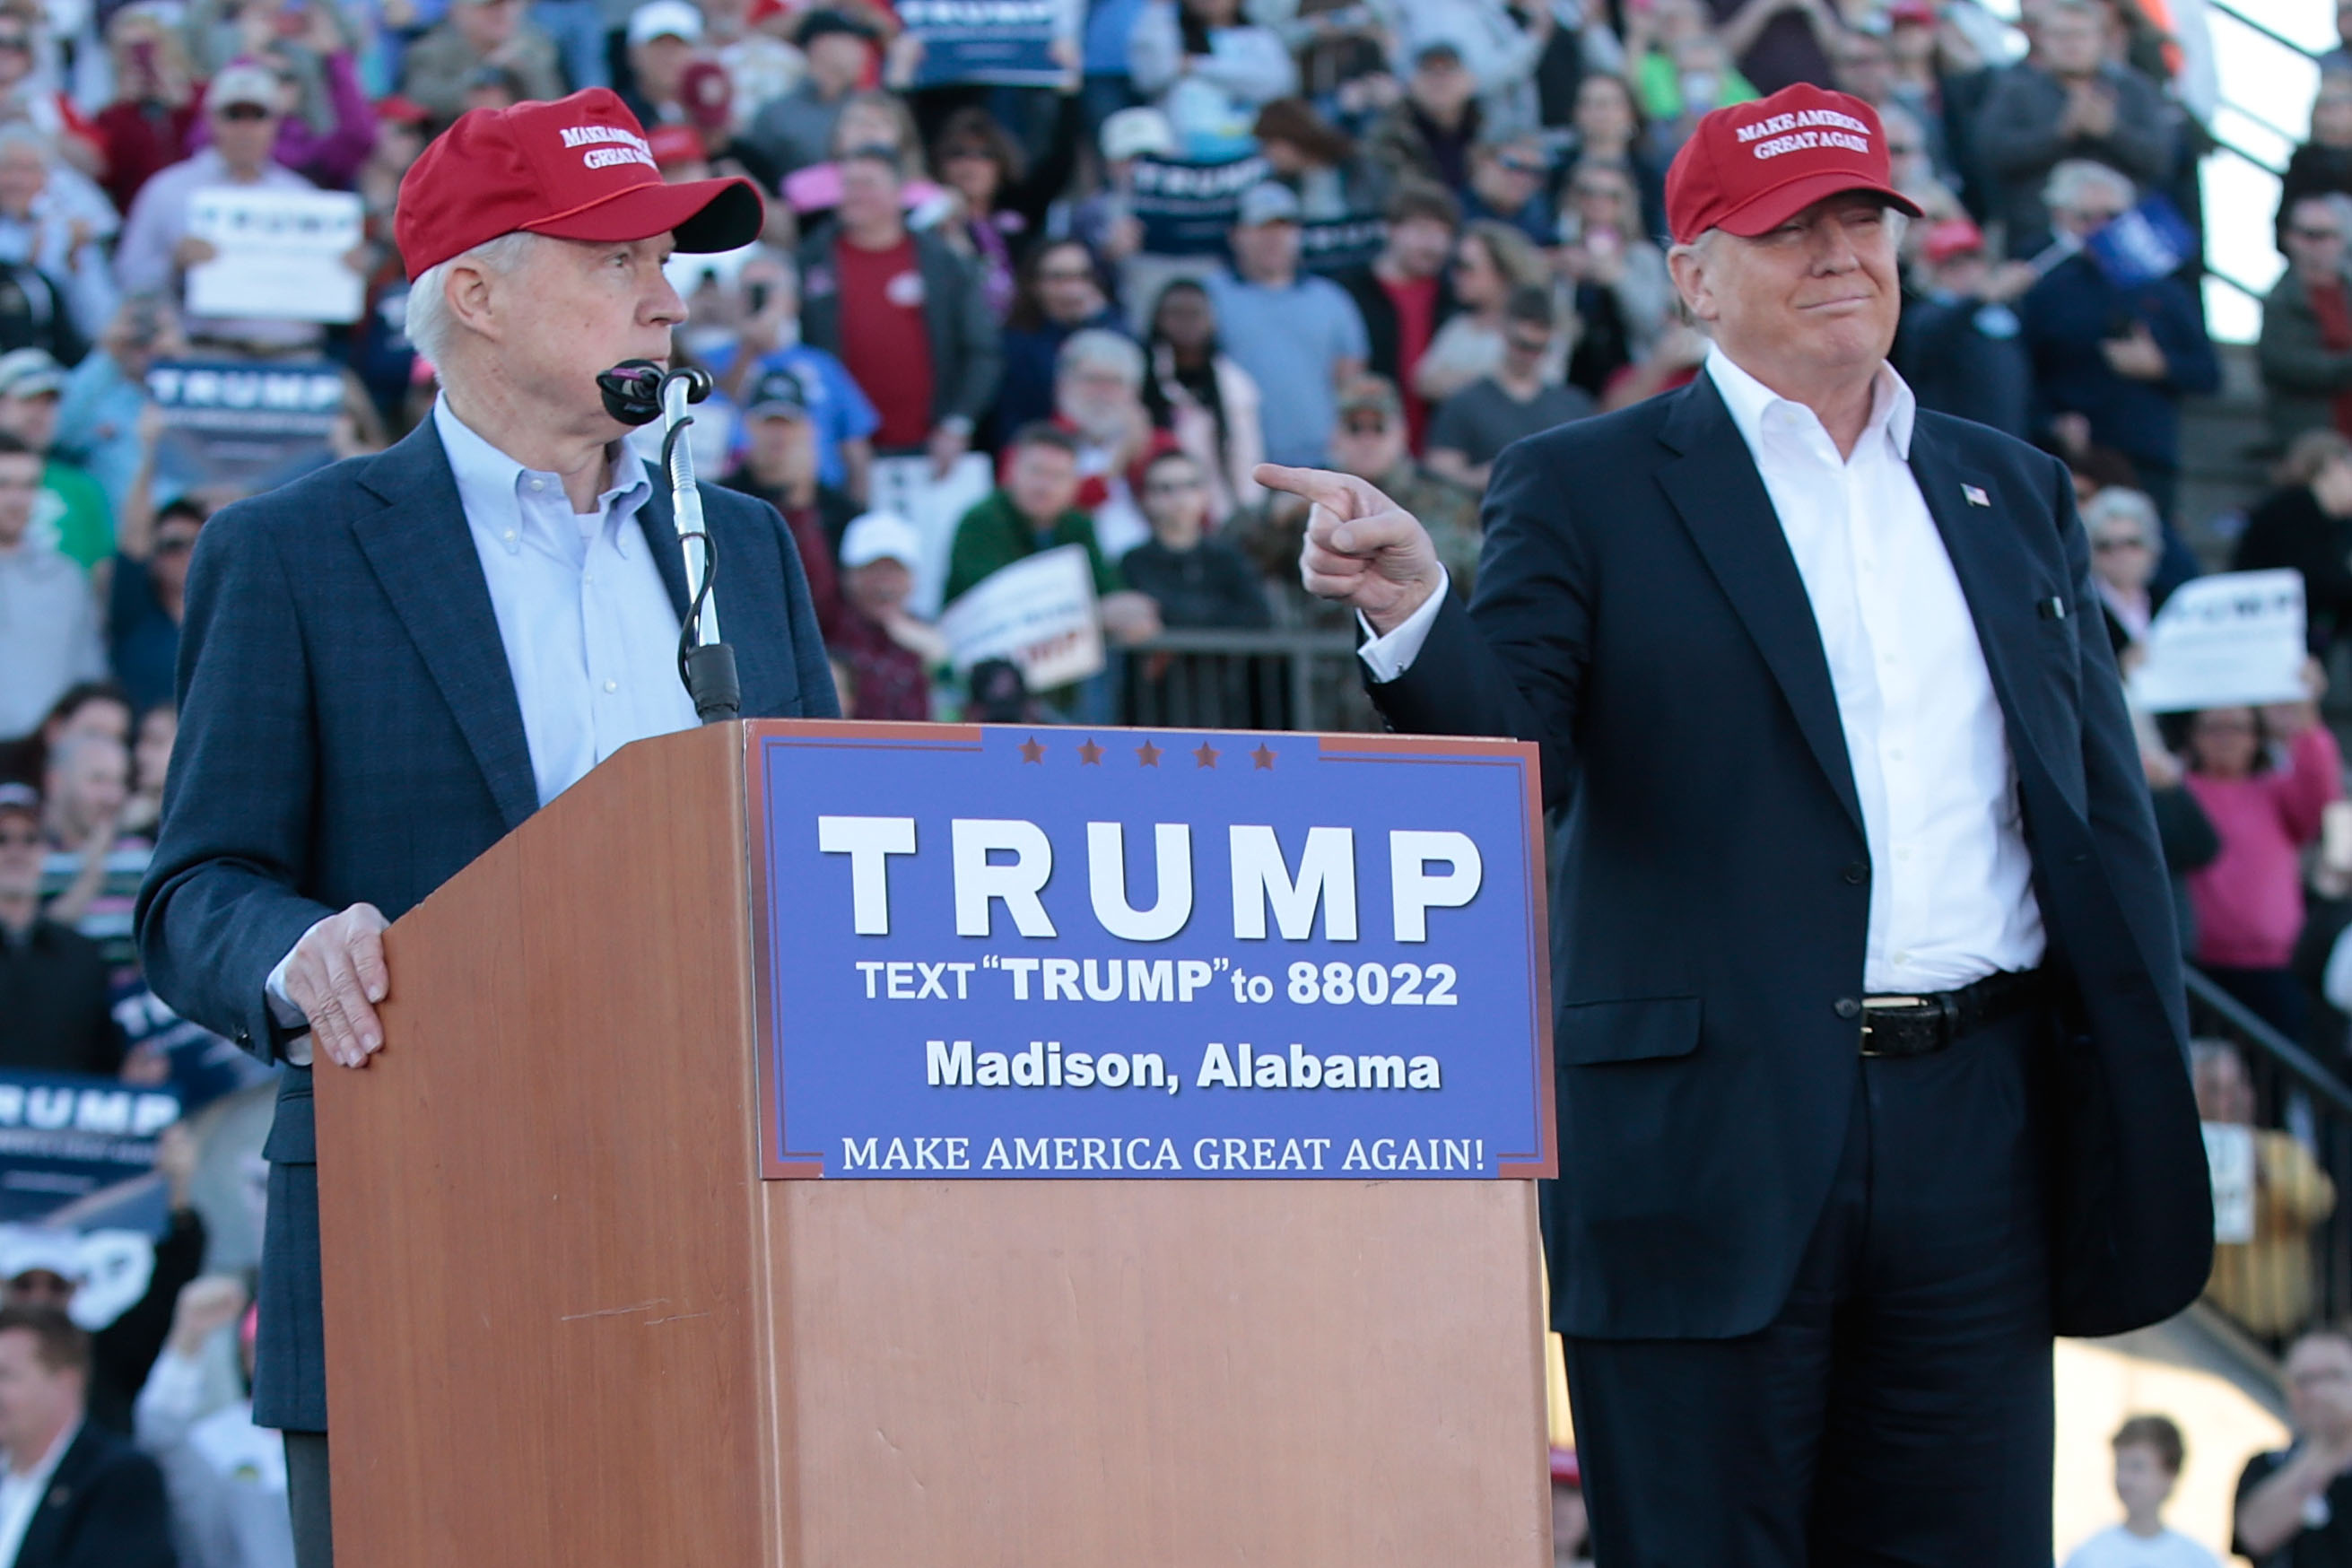 Republican Presidential Candidate Donald Trump Holds Primary Election Rally In Alabama